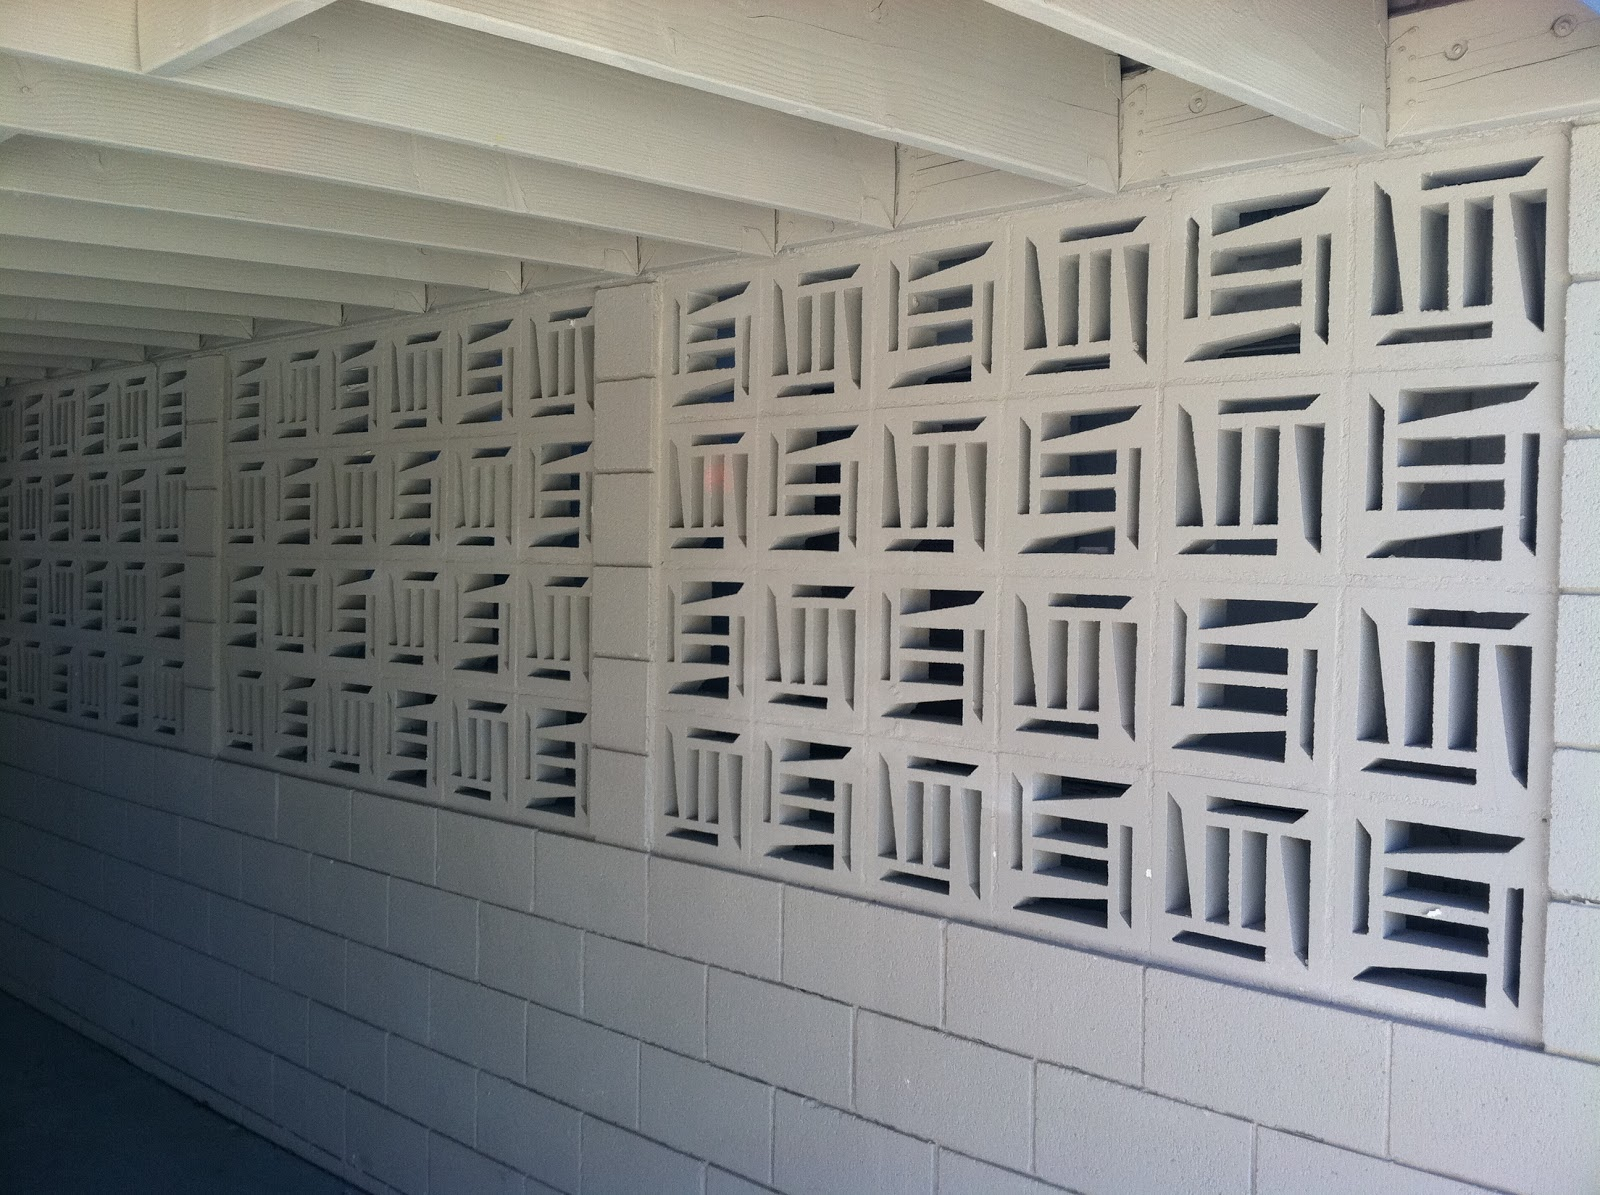 Meiselmania: Iconic Decorative Concrete Screen Block